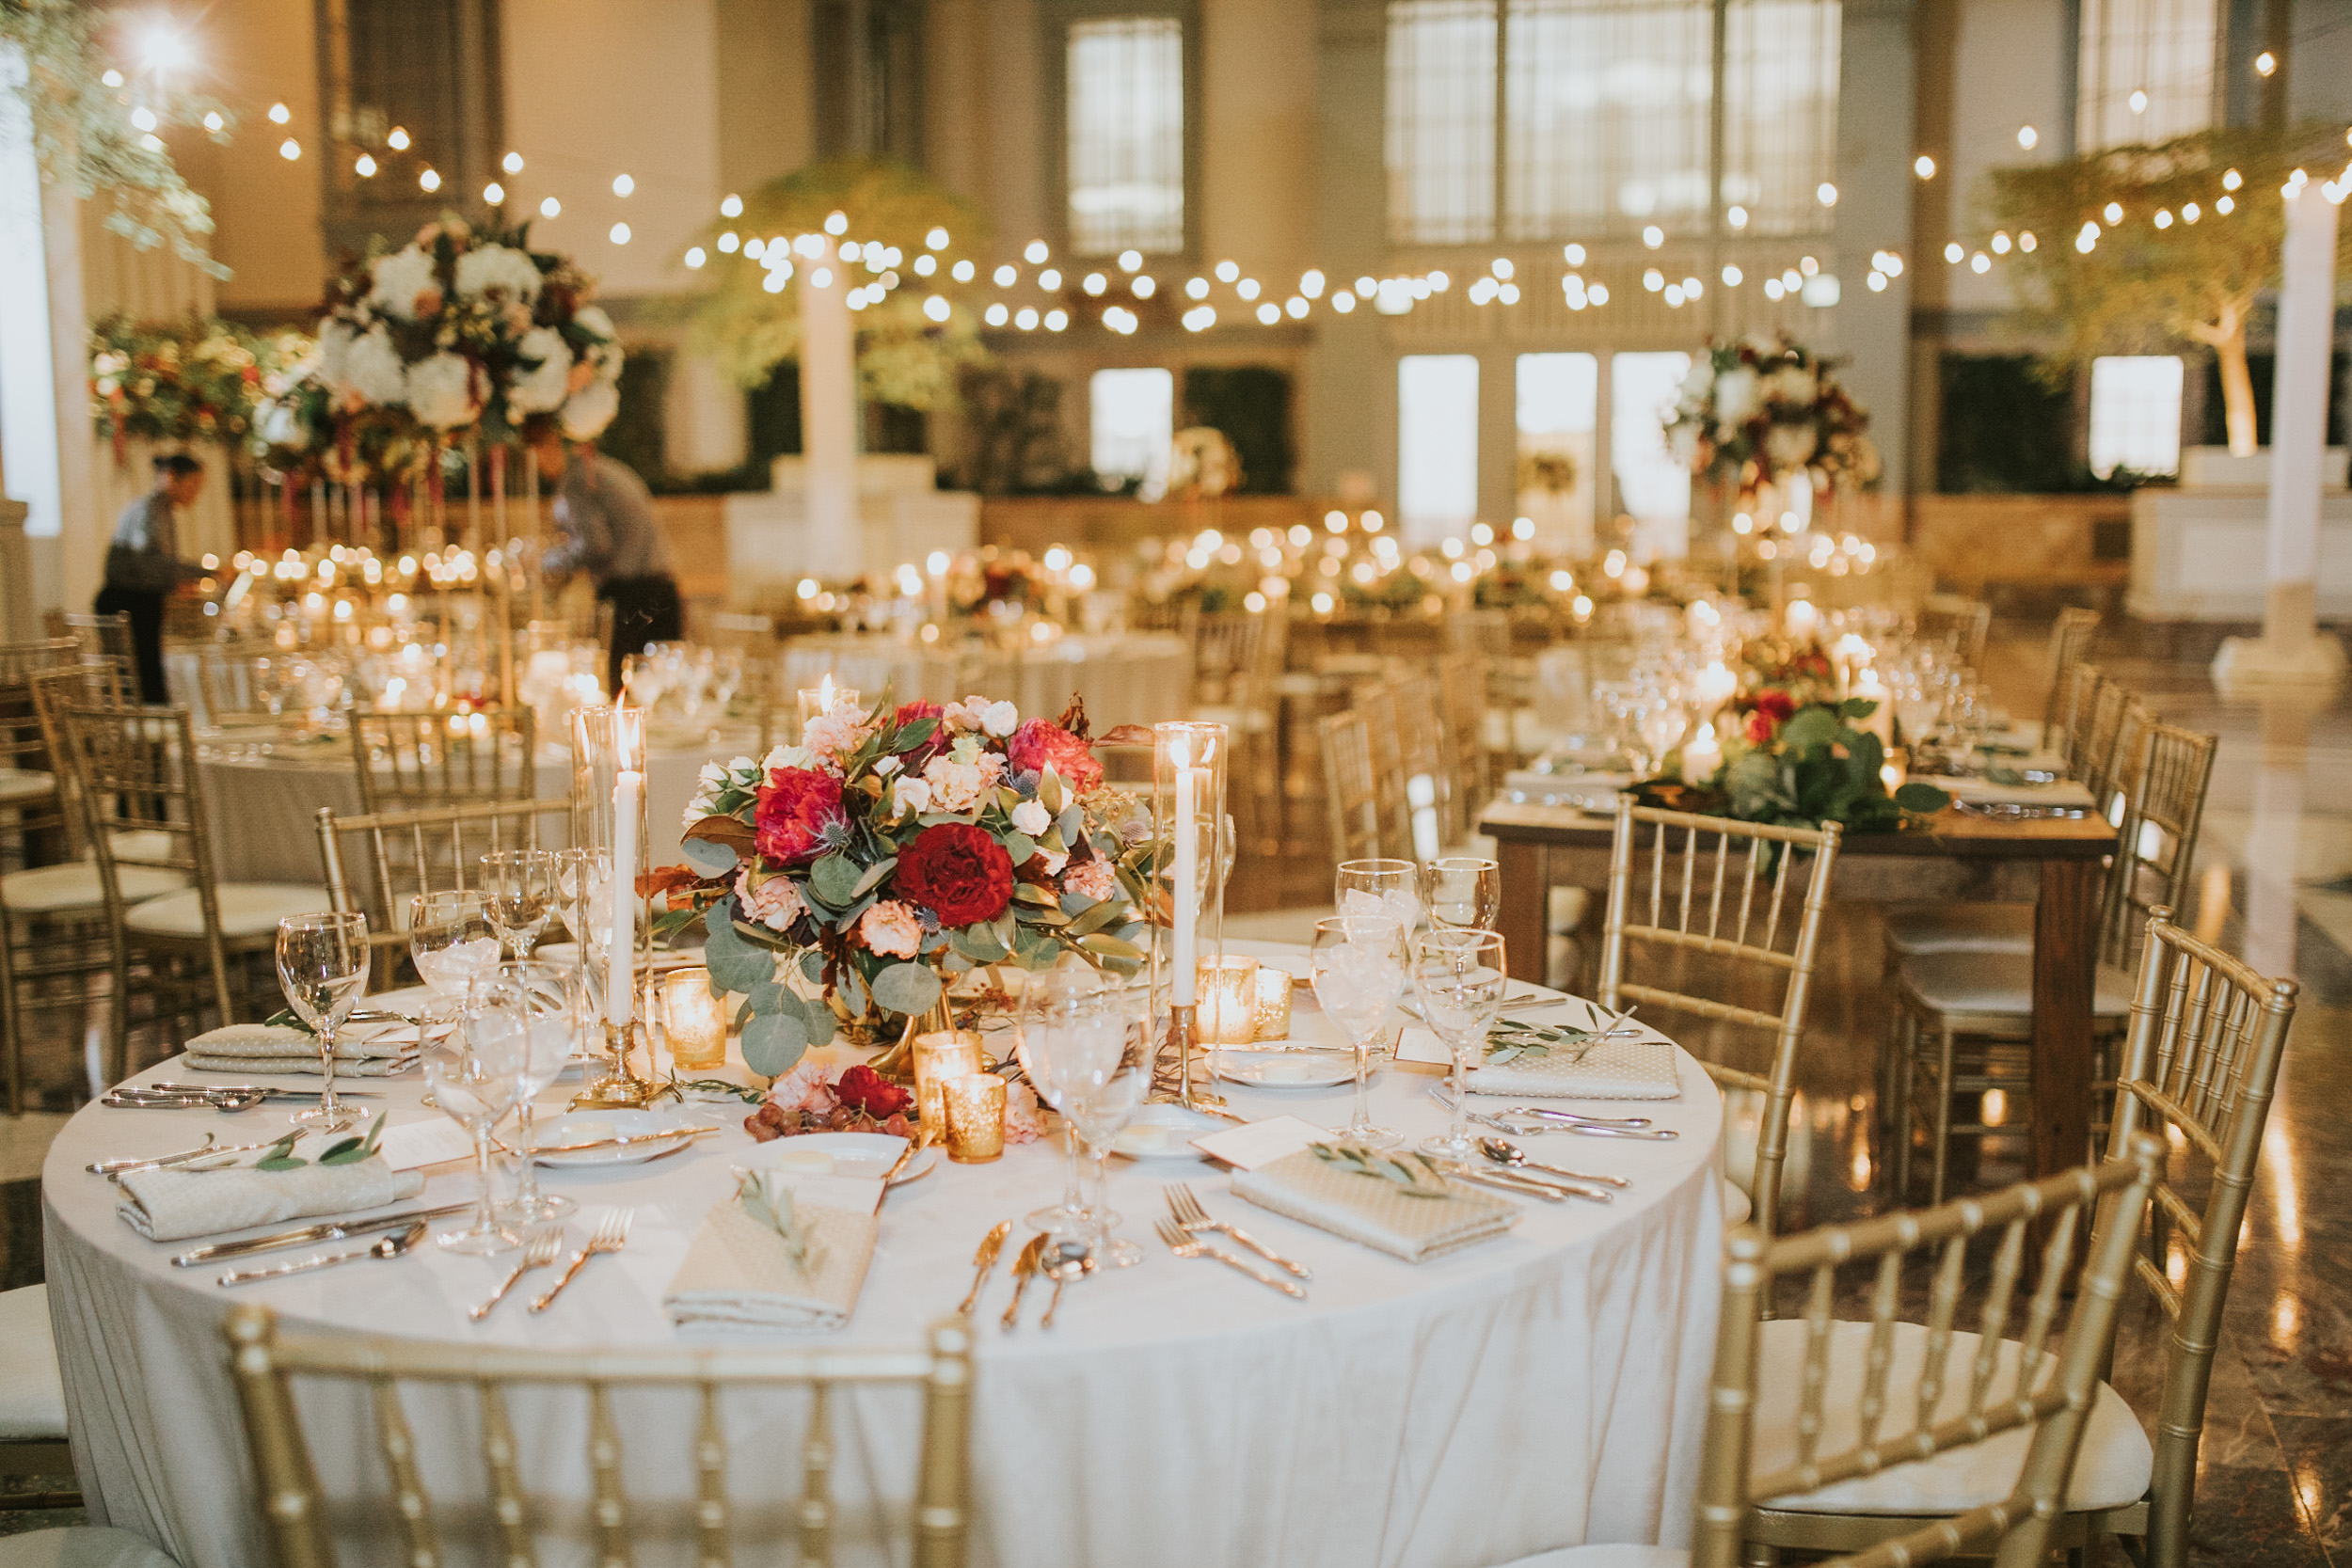 HaroldWashingtonLibraryWedding_Polly C Photography 1704191347.jpg